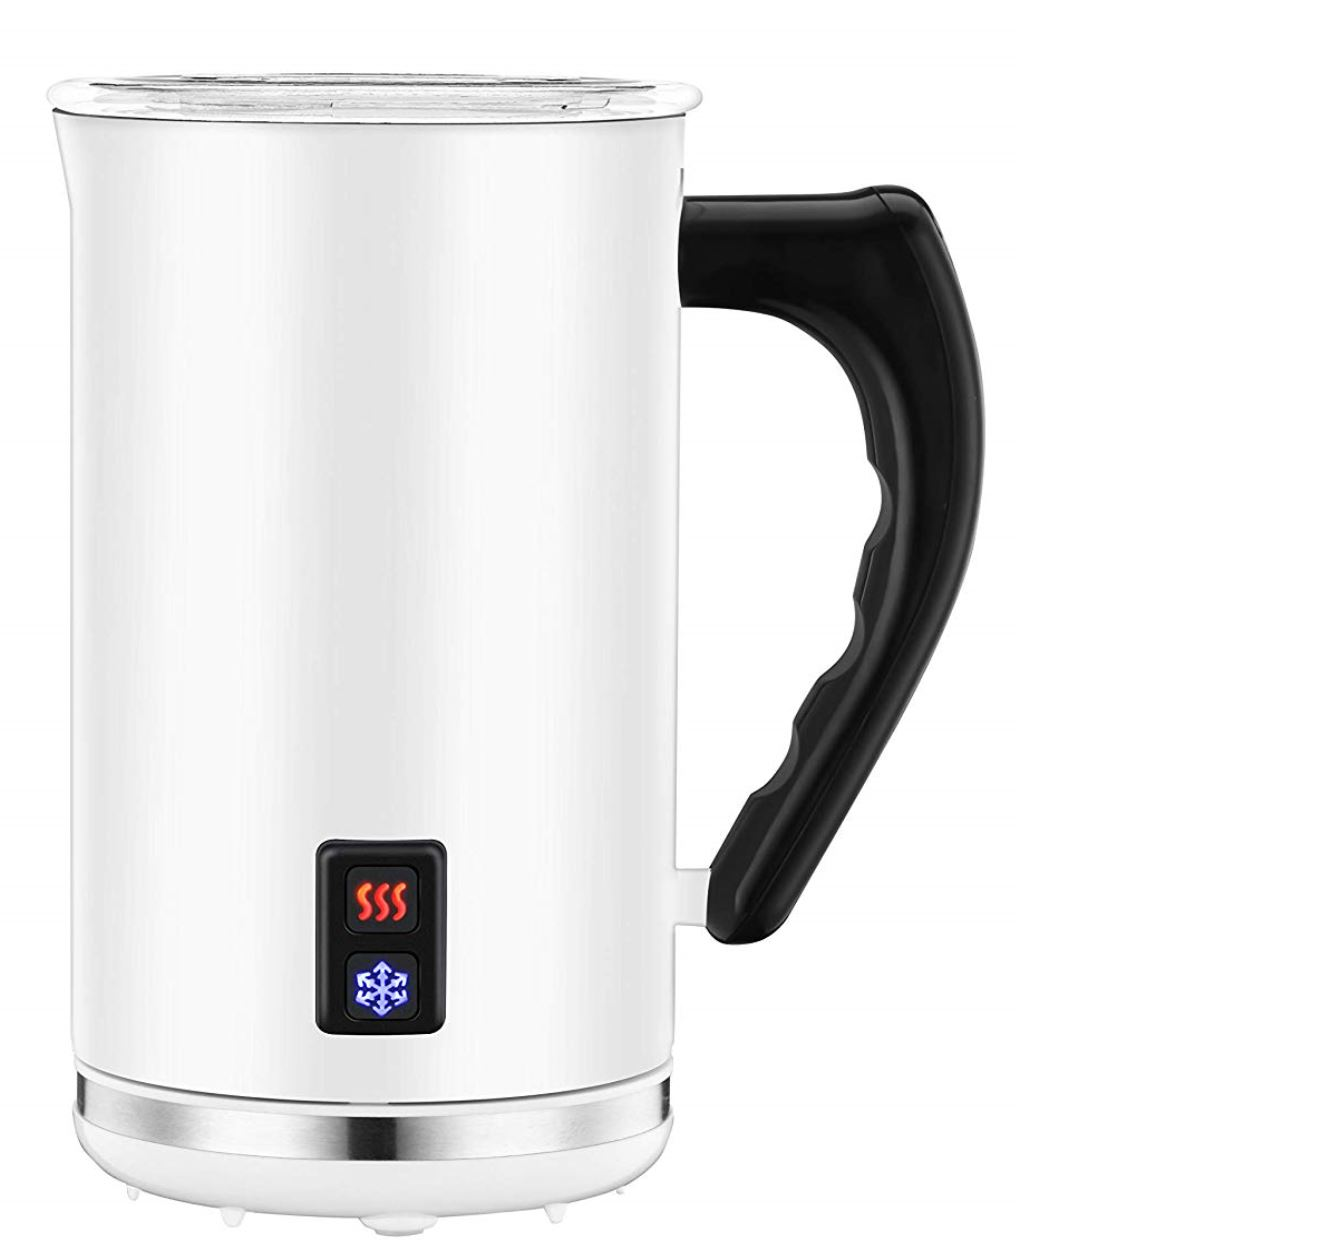 IKICH electric milk frother feature